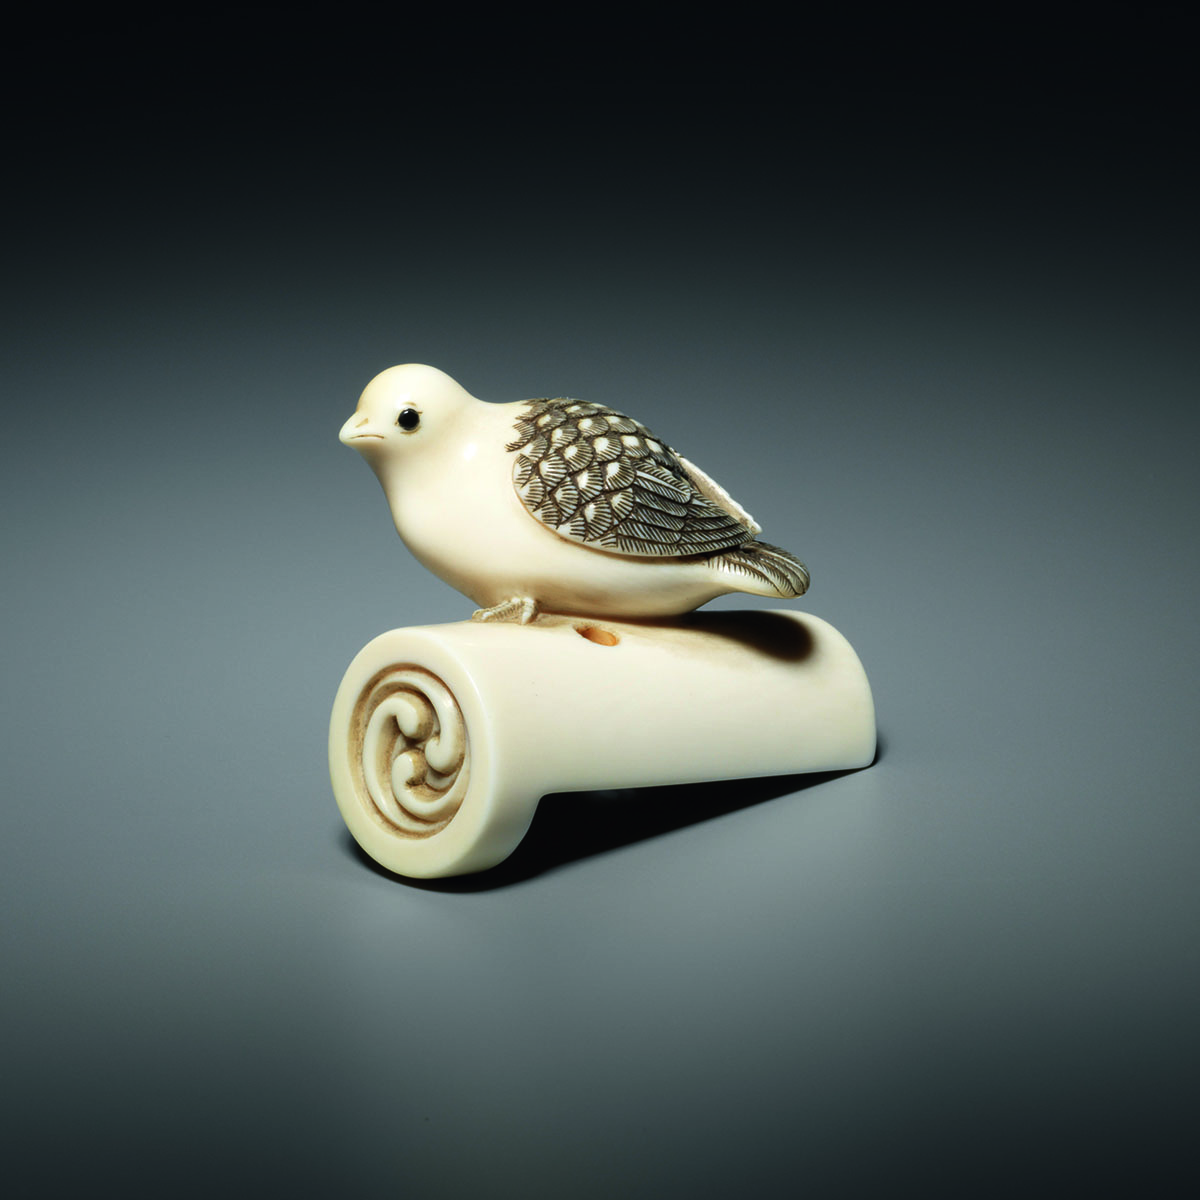 Ivory Netsuke of a Pigeon on a Rooftile by Anraku, MR3340-v1